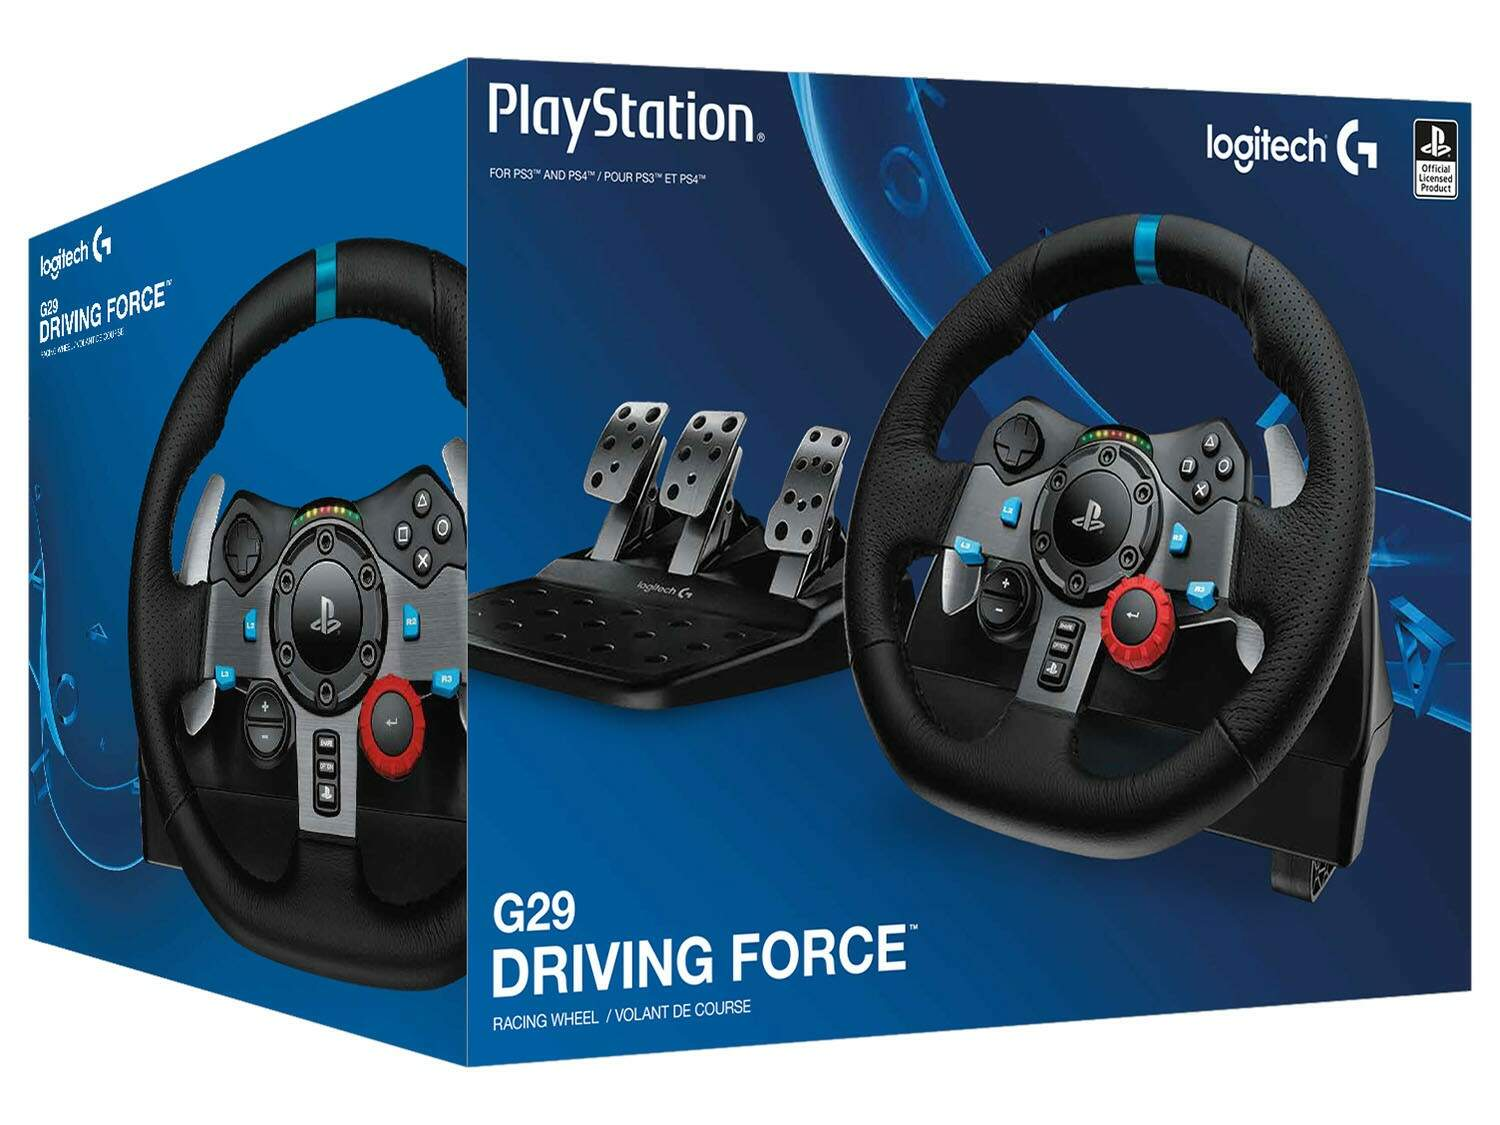 Volante para PS4 PS3 ou Windows Logitech - G29